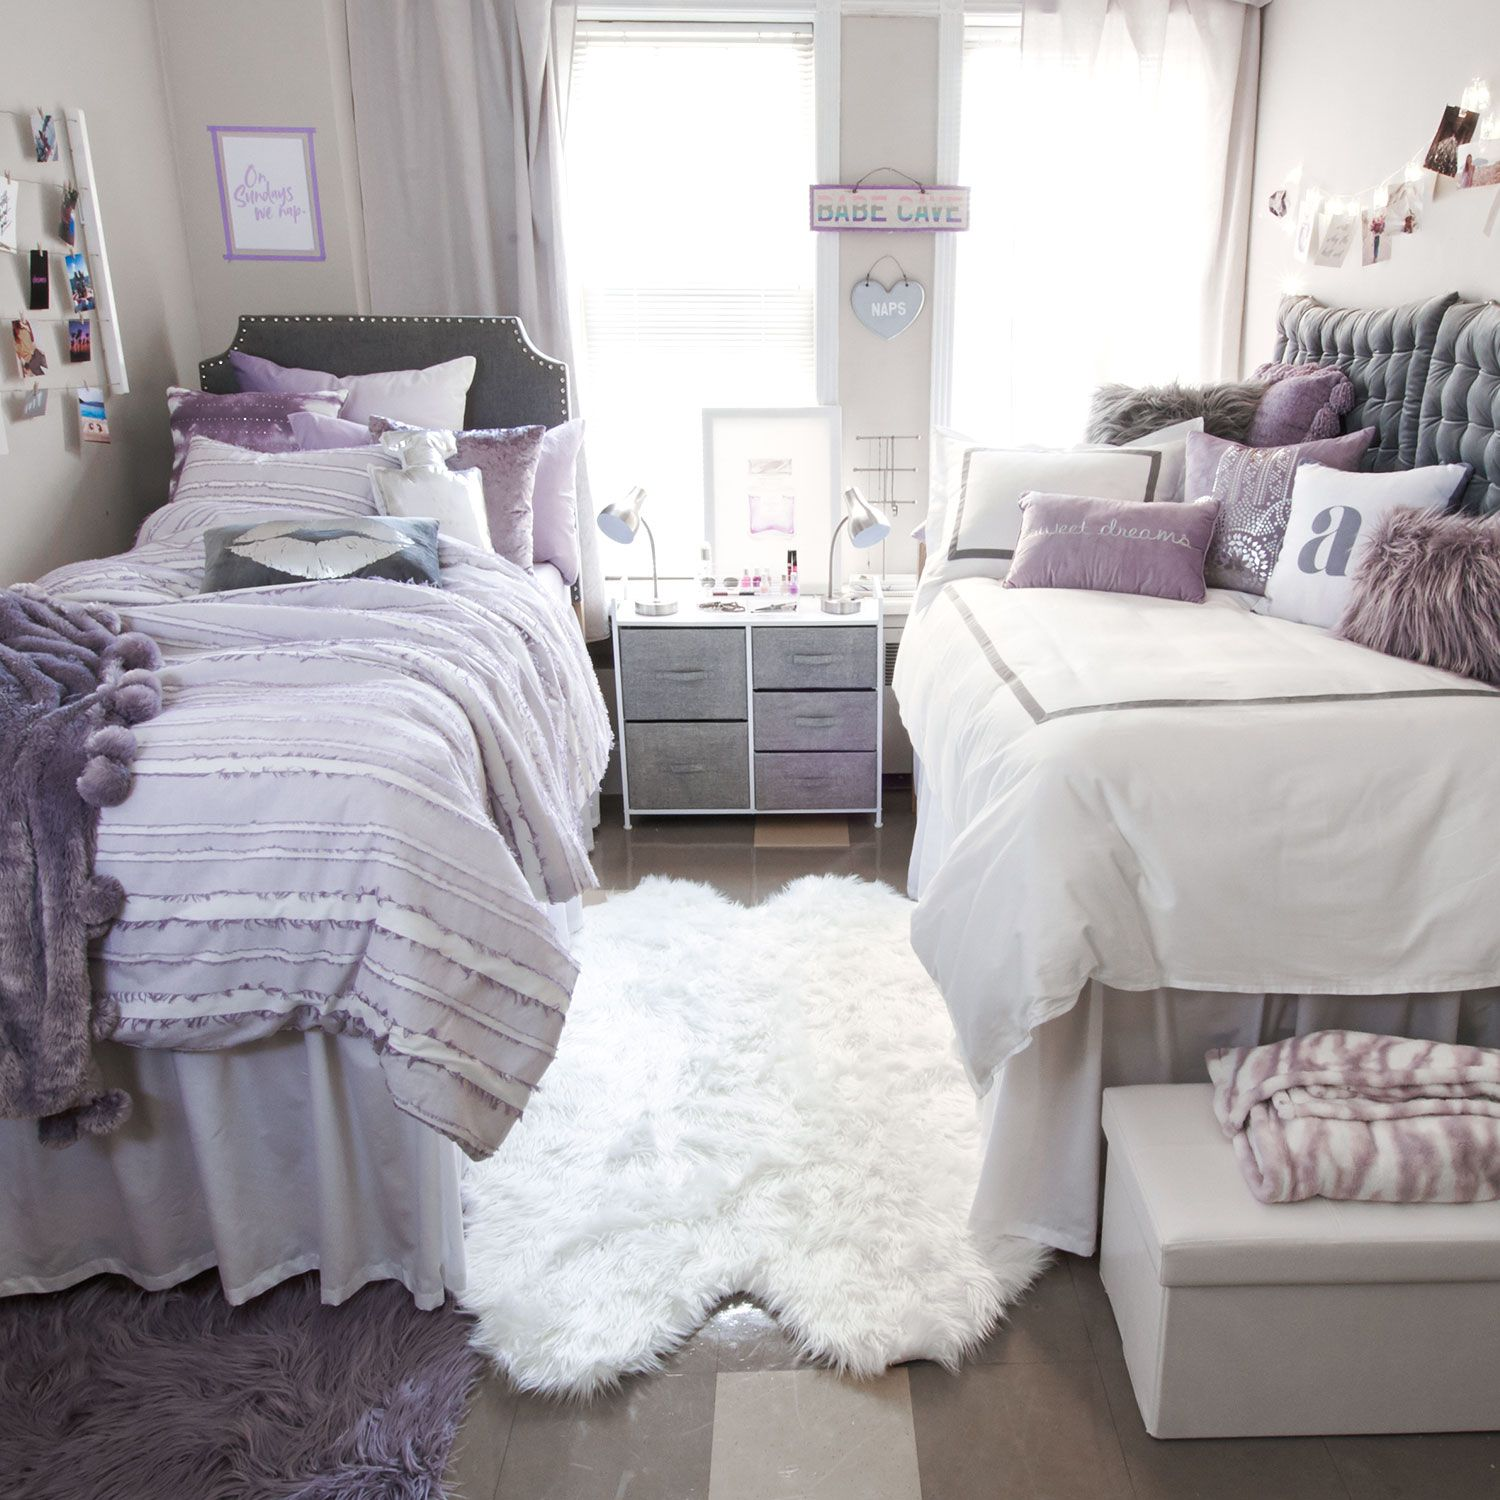 16 Best Dorm Room Transformations Of All Time Most Amazing